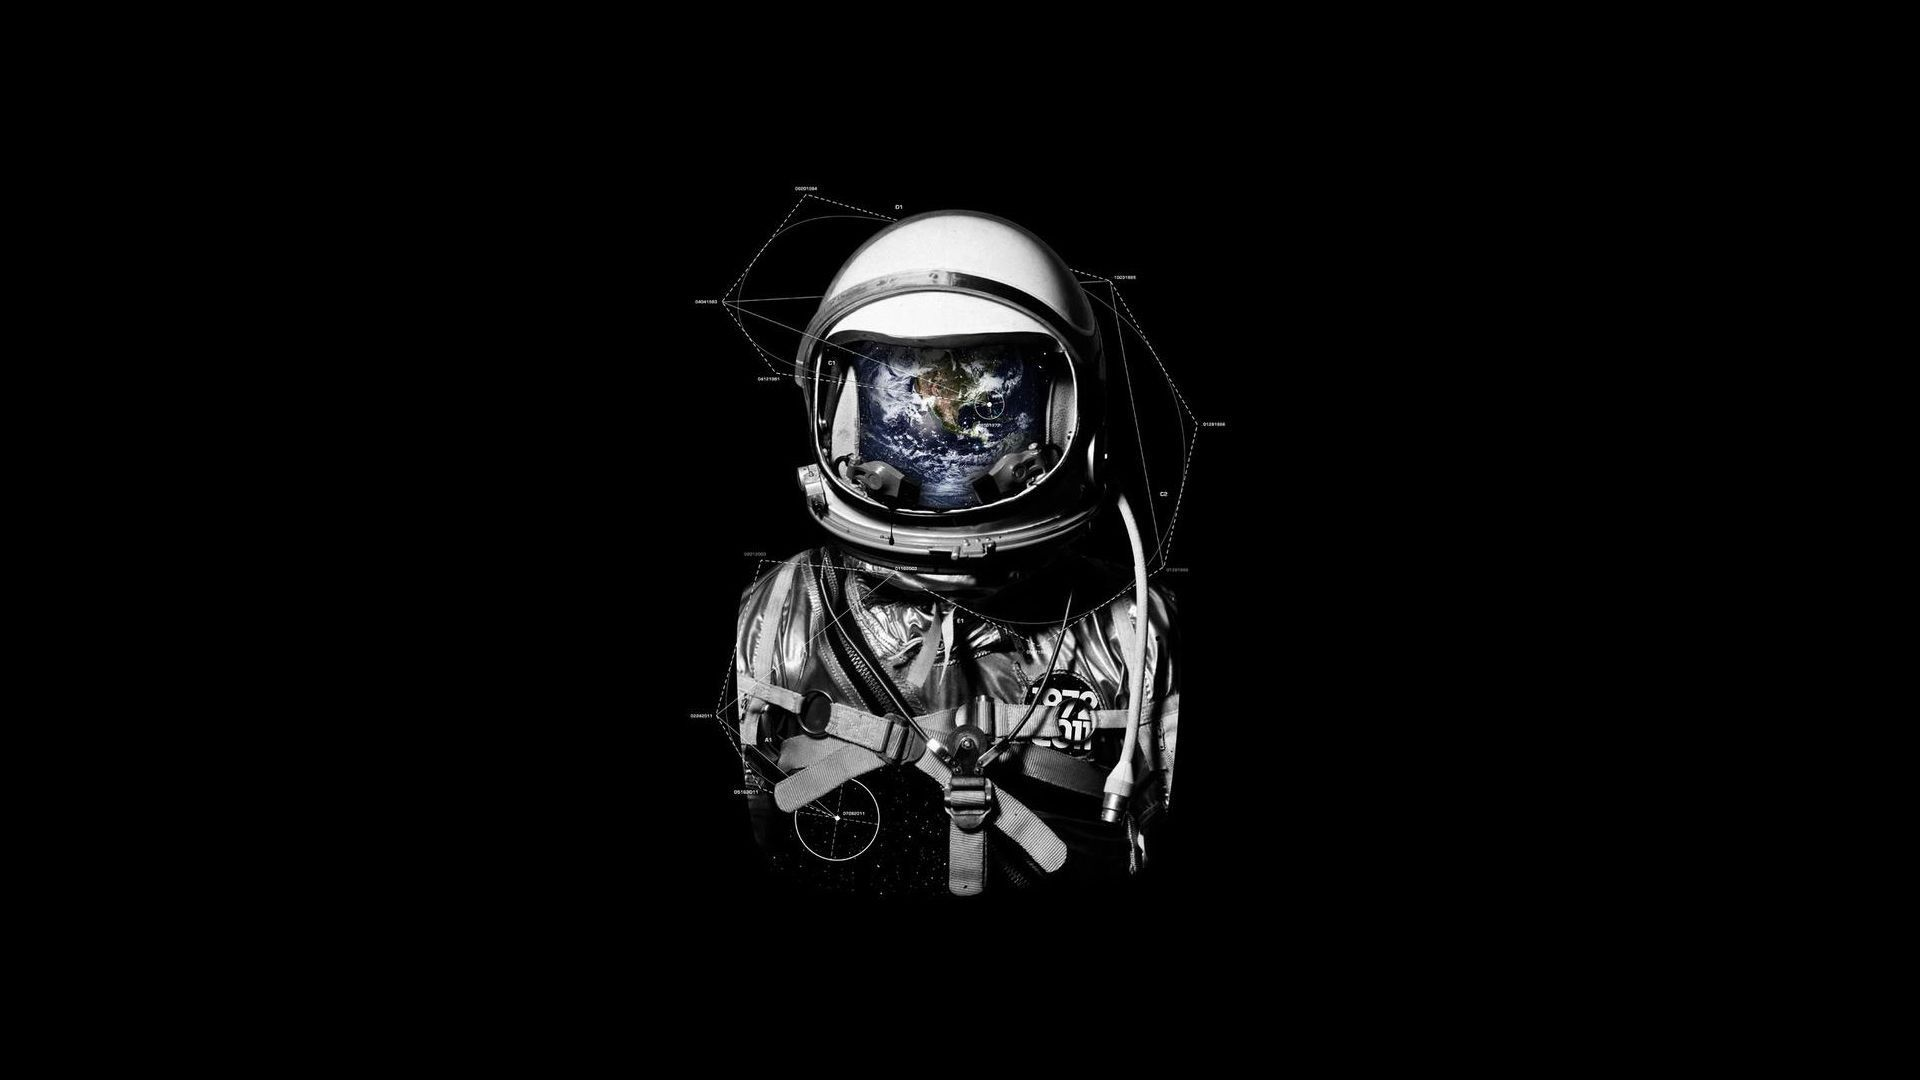 Astronaut Wallpapers For Android For Desktop Wallpaper